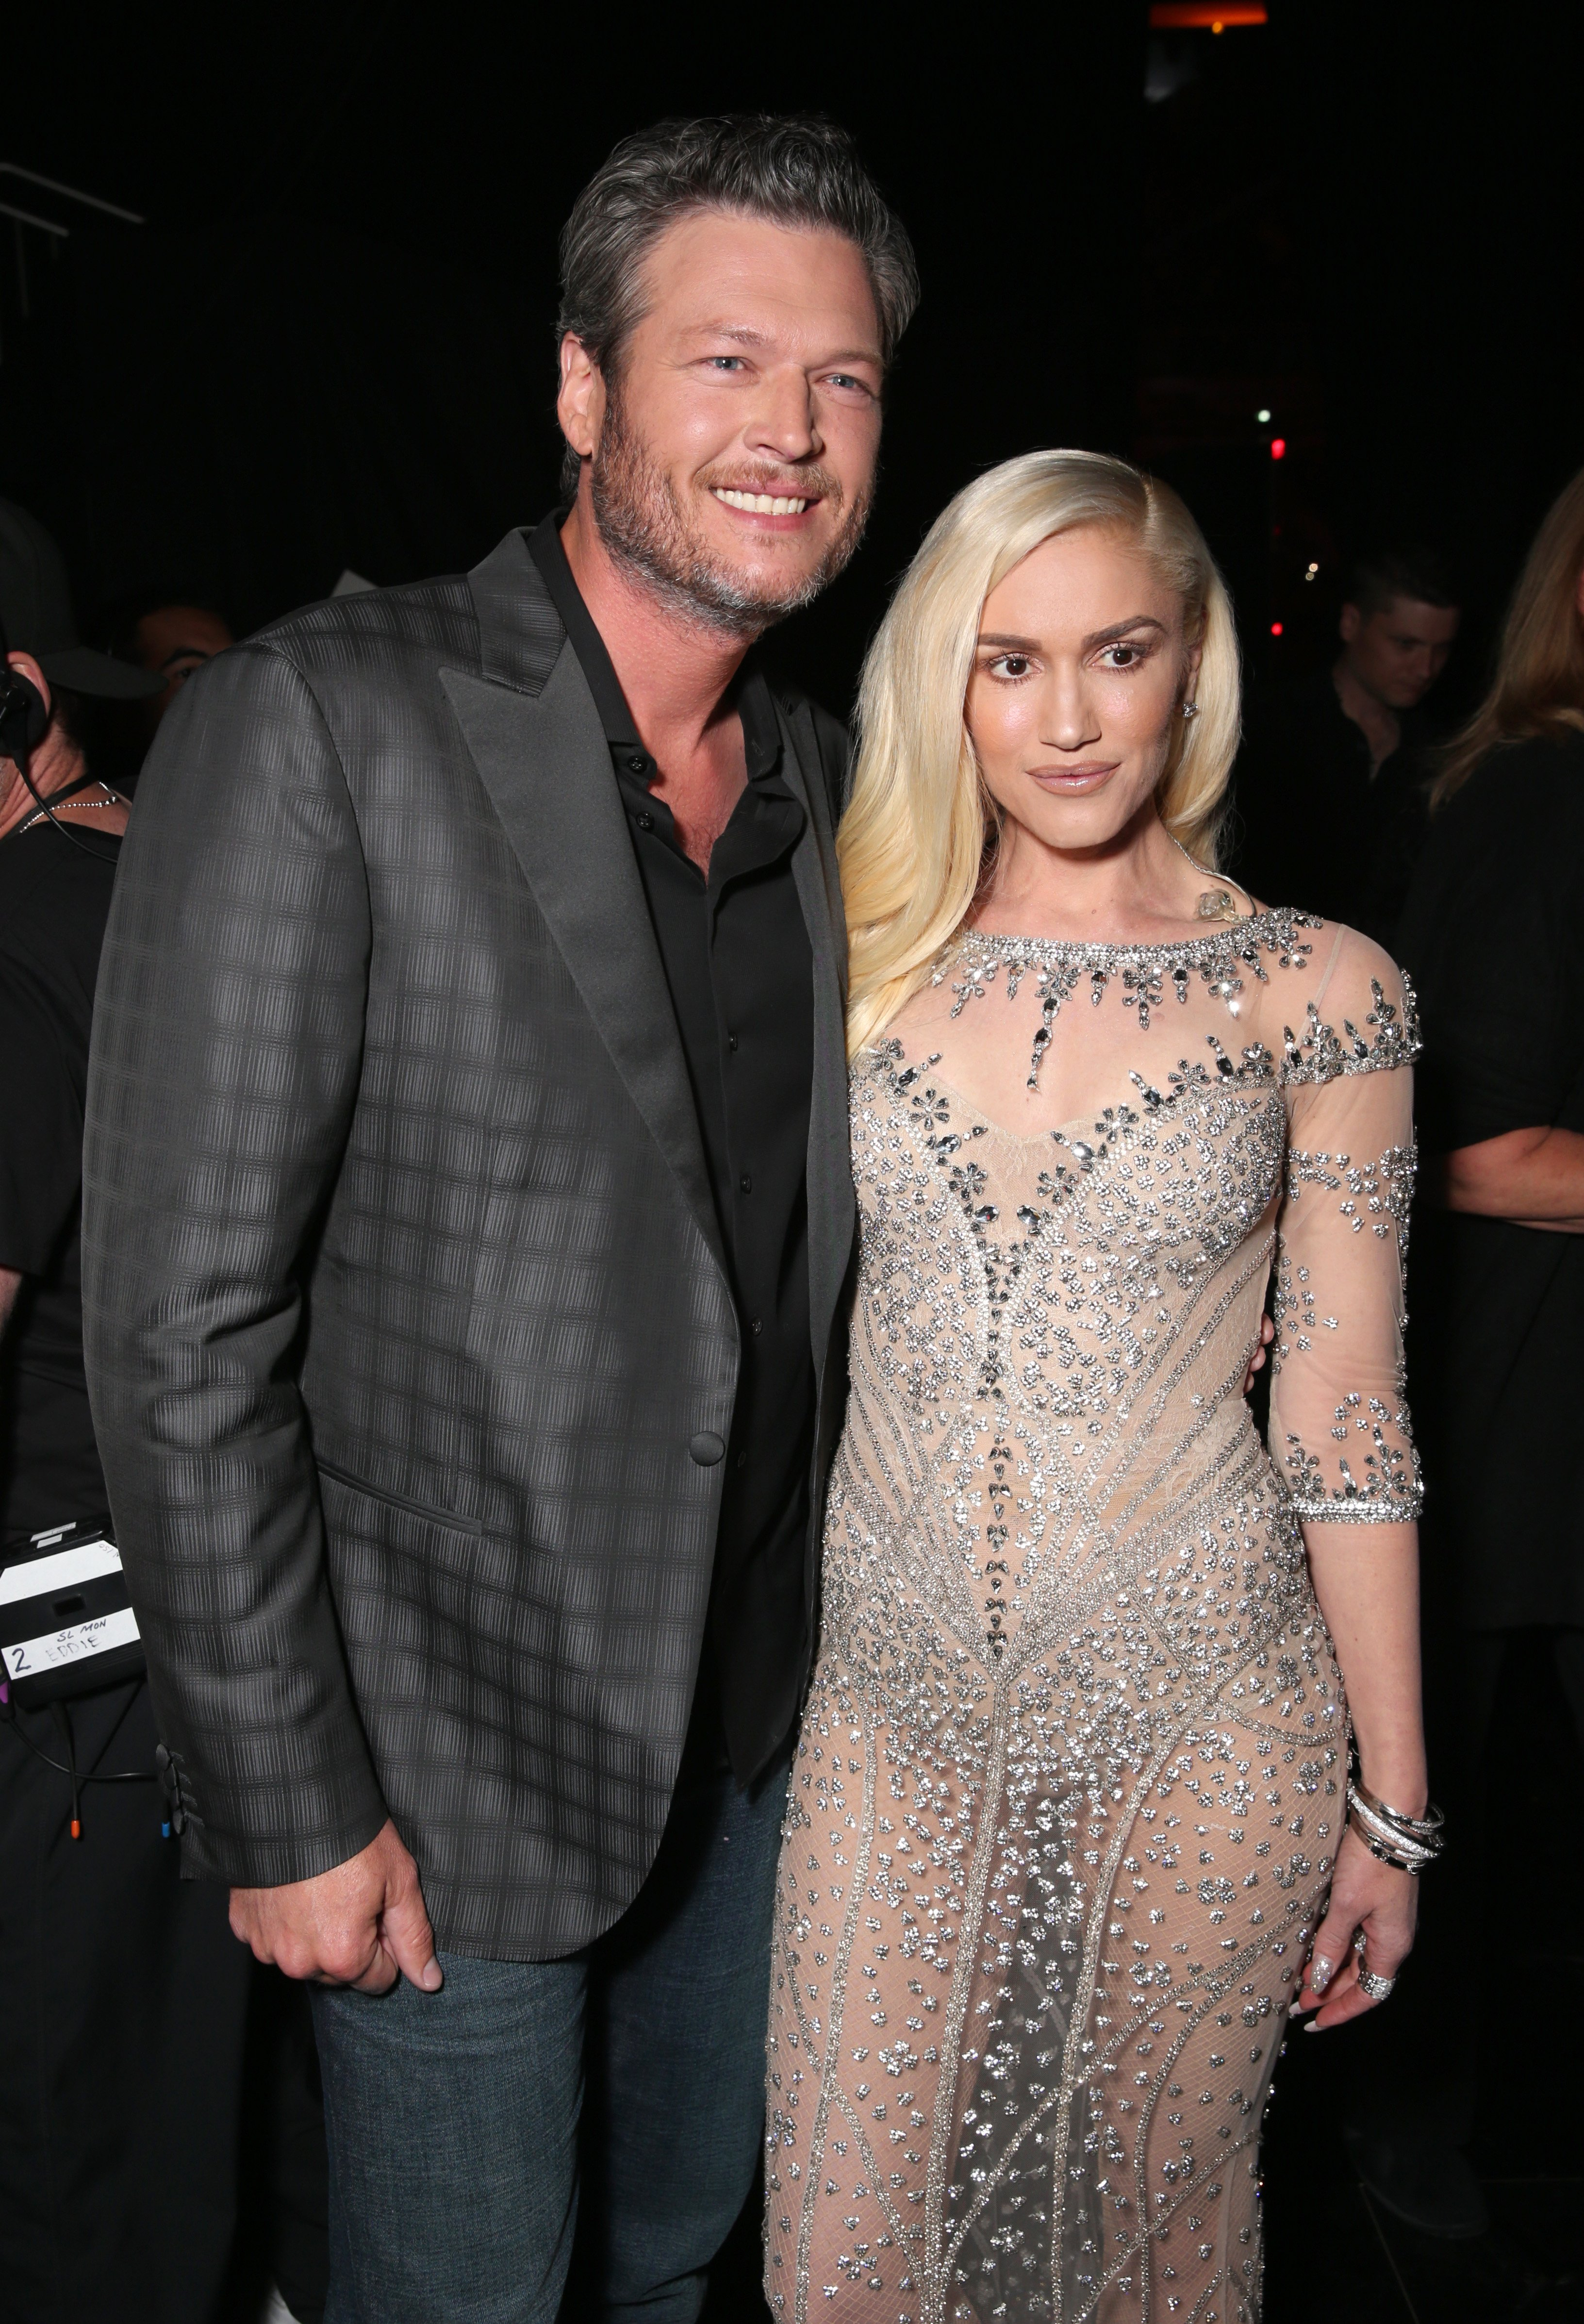 Blake Shelton and Gwen Stefani attend the 2016 Billboard Music Awards. | Source: Getty Images